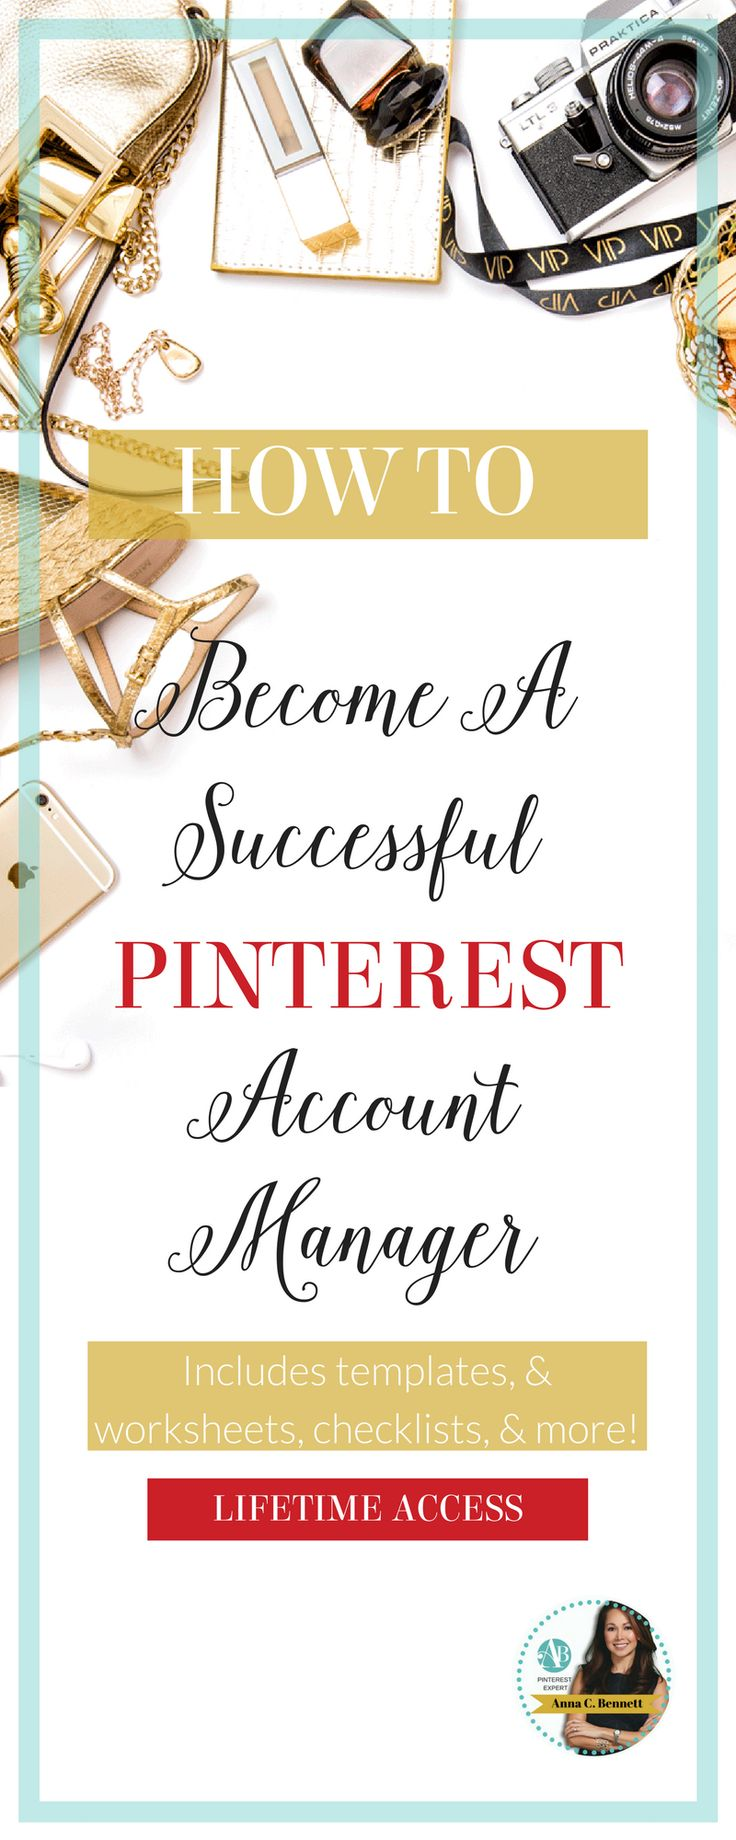 Do you want to offer Pinterest marketing services to your existing clients? Do you want to work from home as a social media manager? Then this course is for you. Includes daily, weekly, and monthly checklist to help you become a successful Pinterest account manager. Learn more at http://www.whiteglovesocialmedia.com/become-pinterest-account-manager/  |  Social Media Marketing | Pinterest for Business | Small Business Ideas